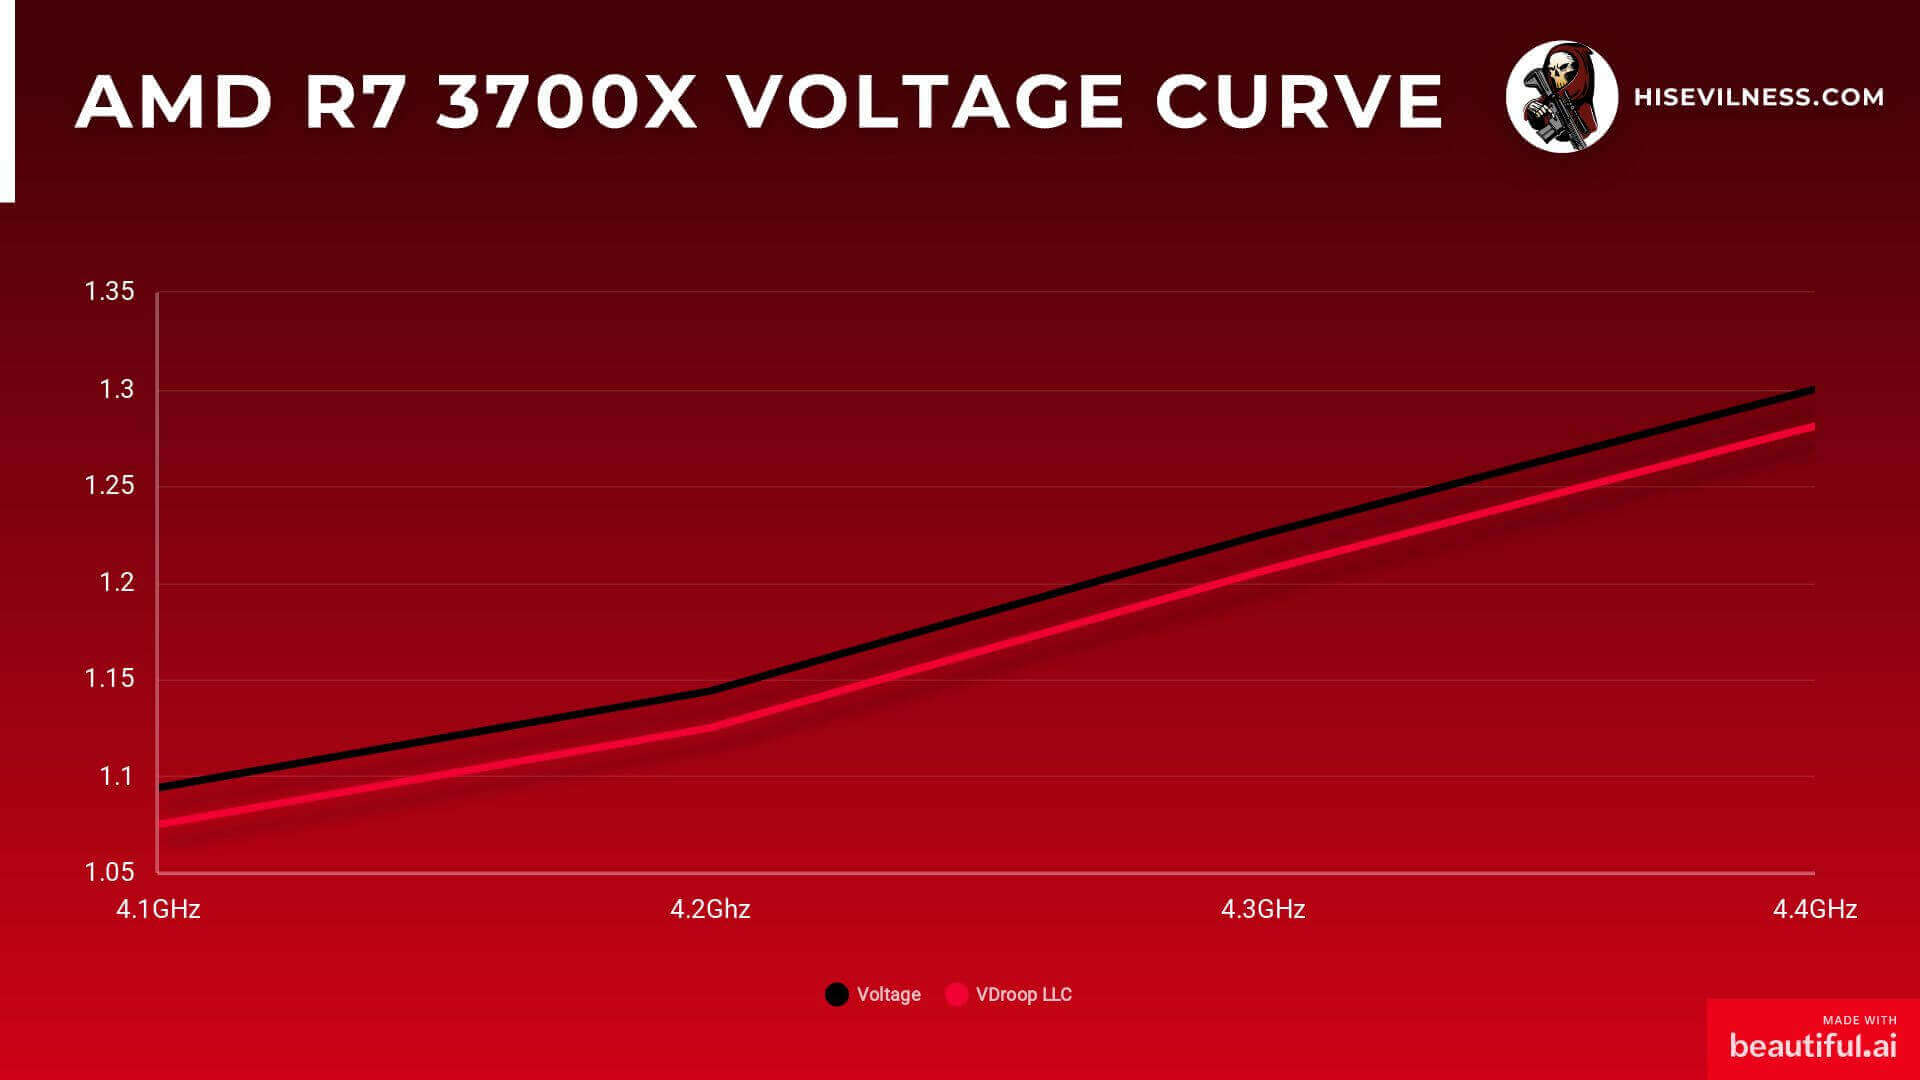 4.1 GHz to 4.4 GHz voltage curve with Vdroop curve